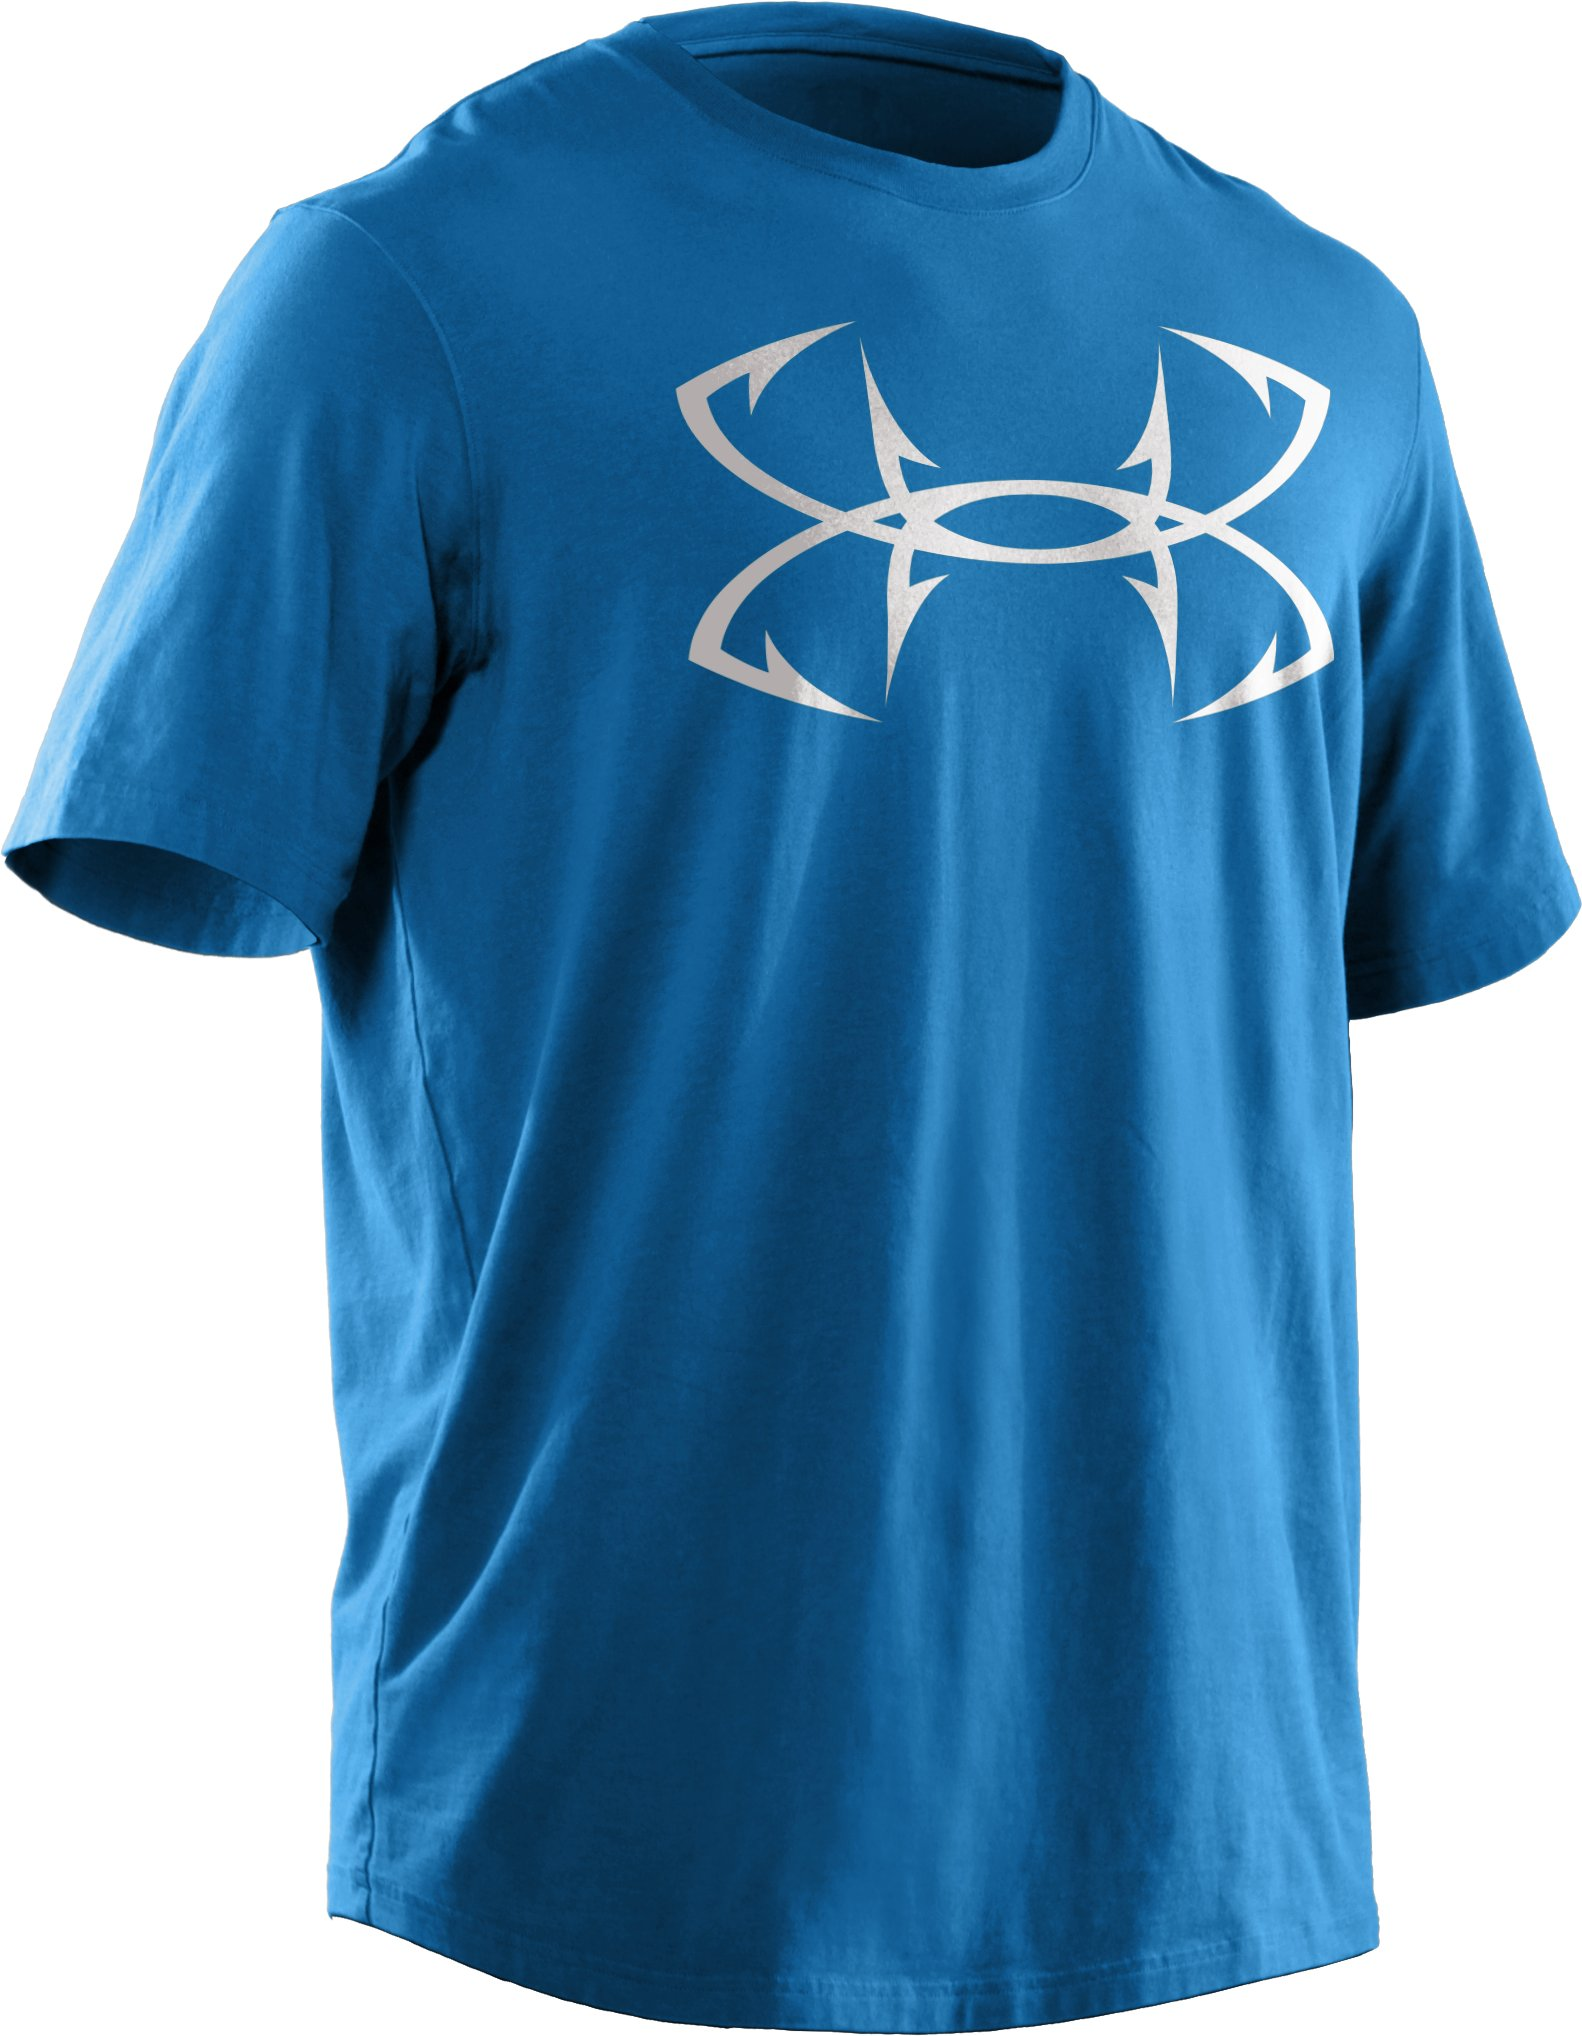 Men's UA Fish Hook Logo T-Shirt, St. Tropez